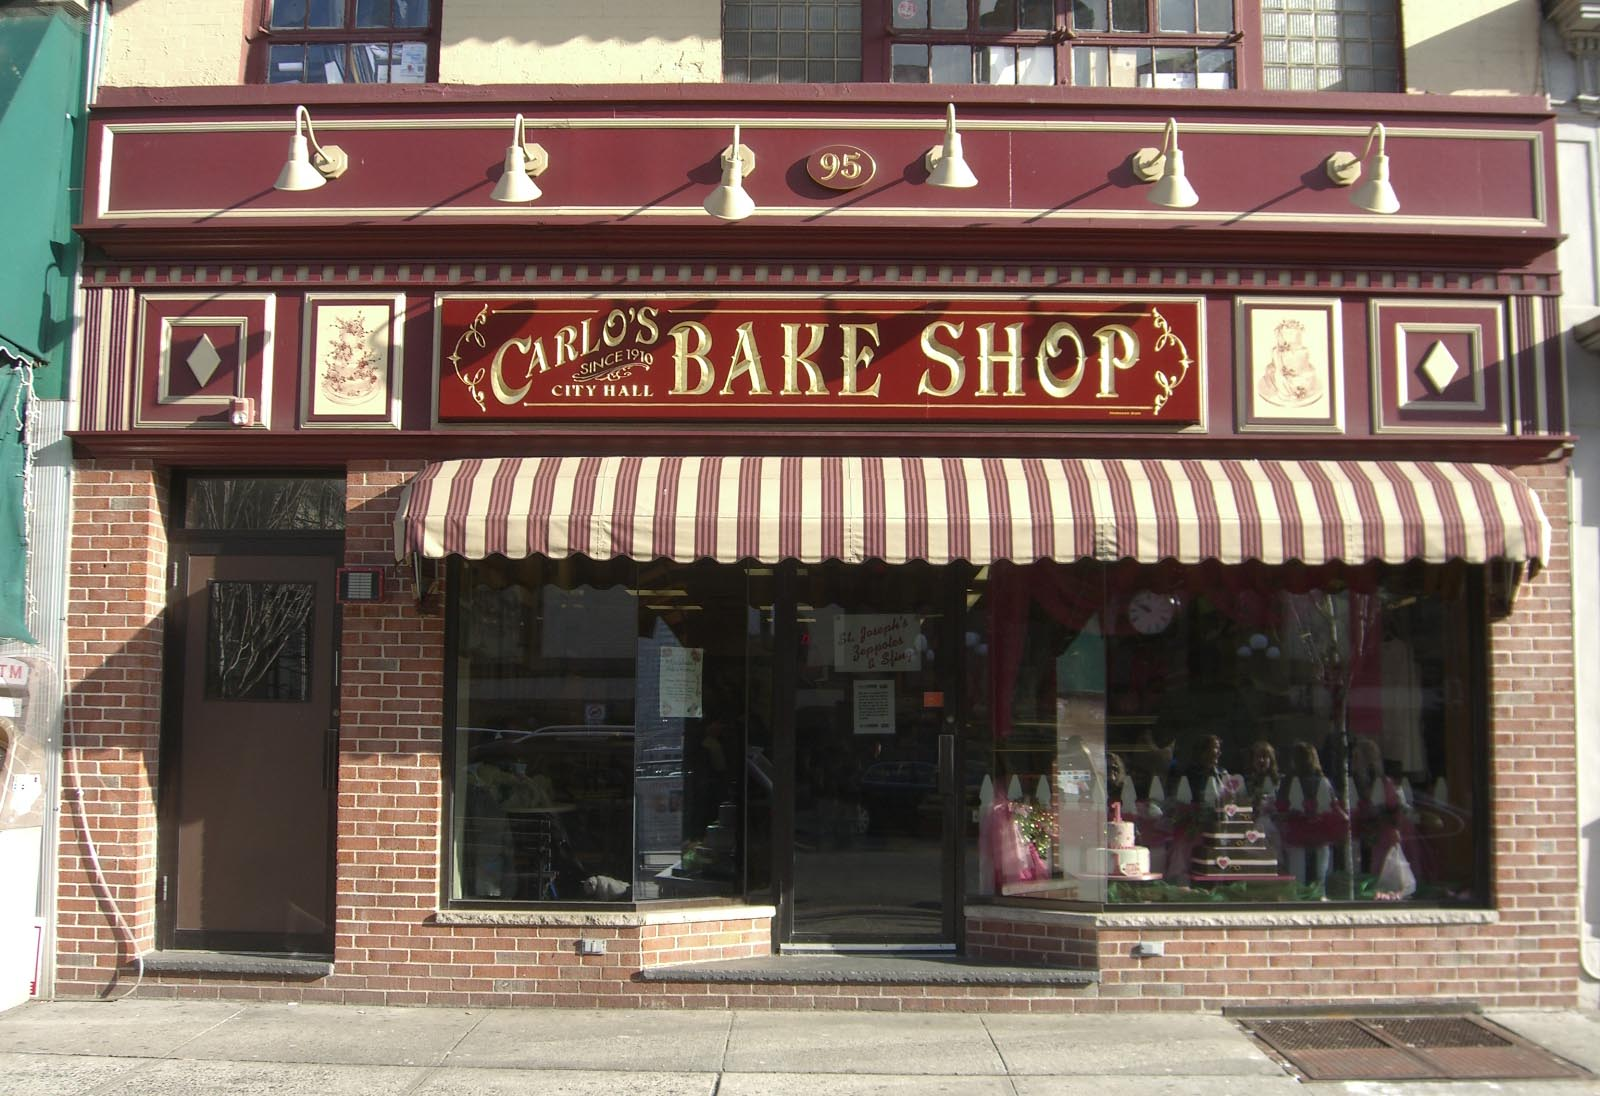 Carlos bake shop awning red and white